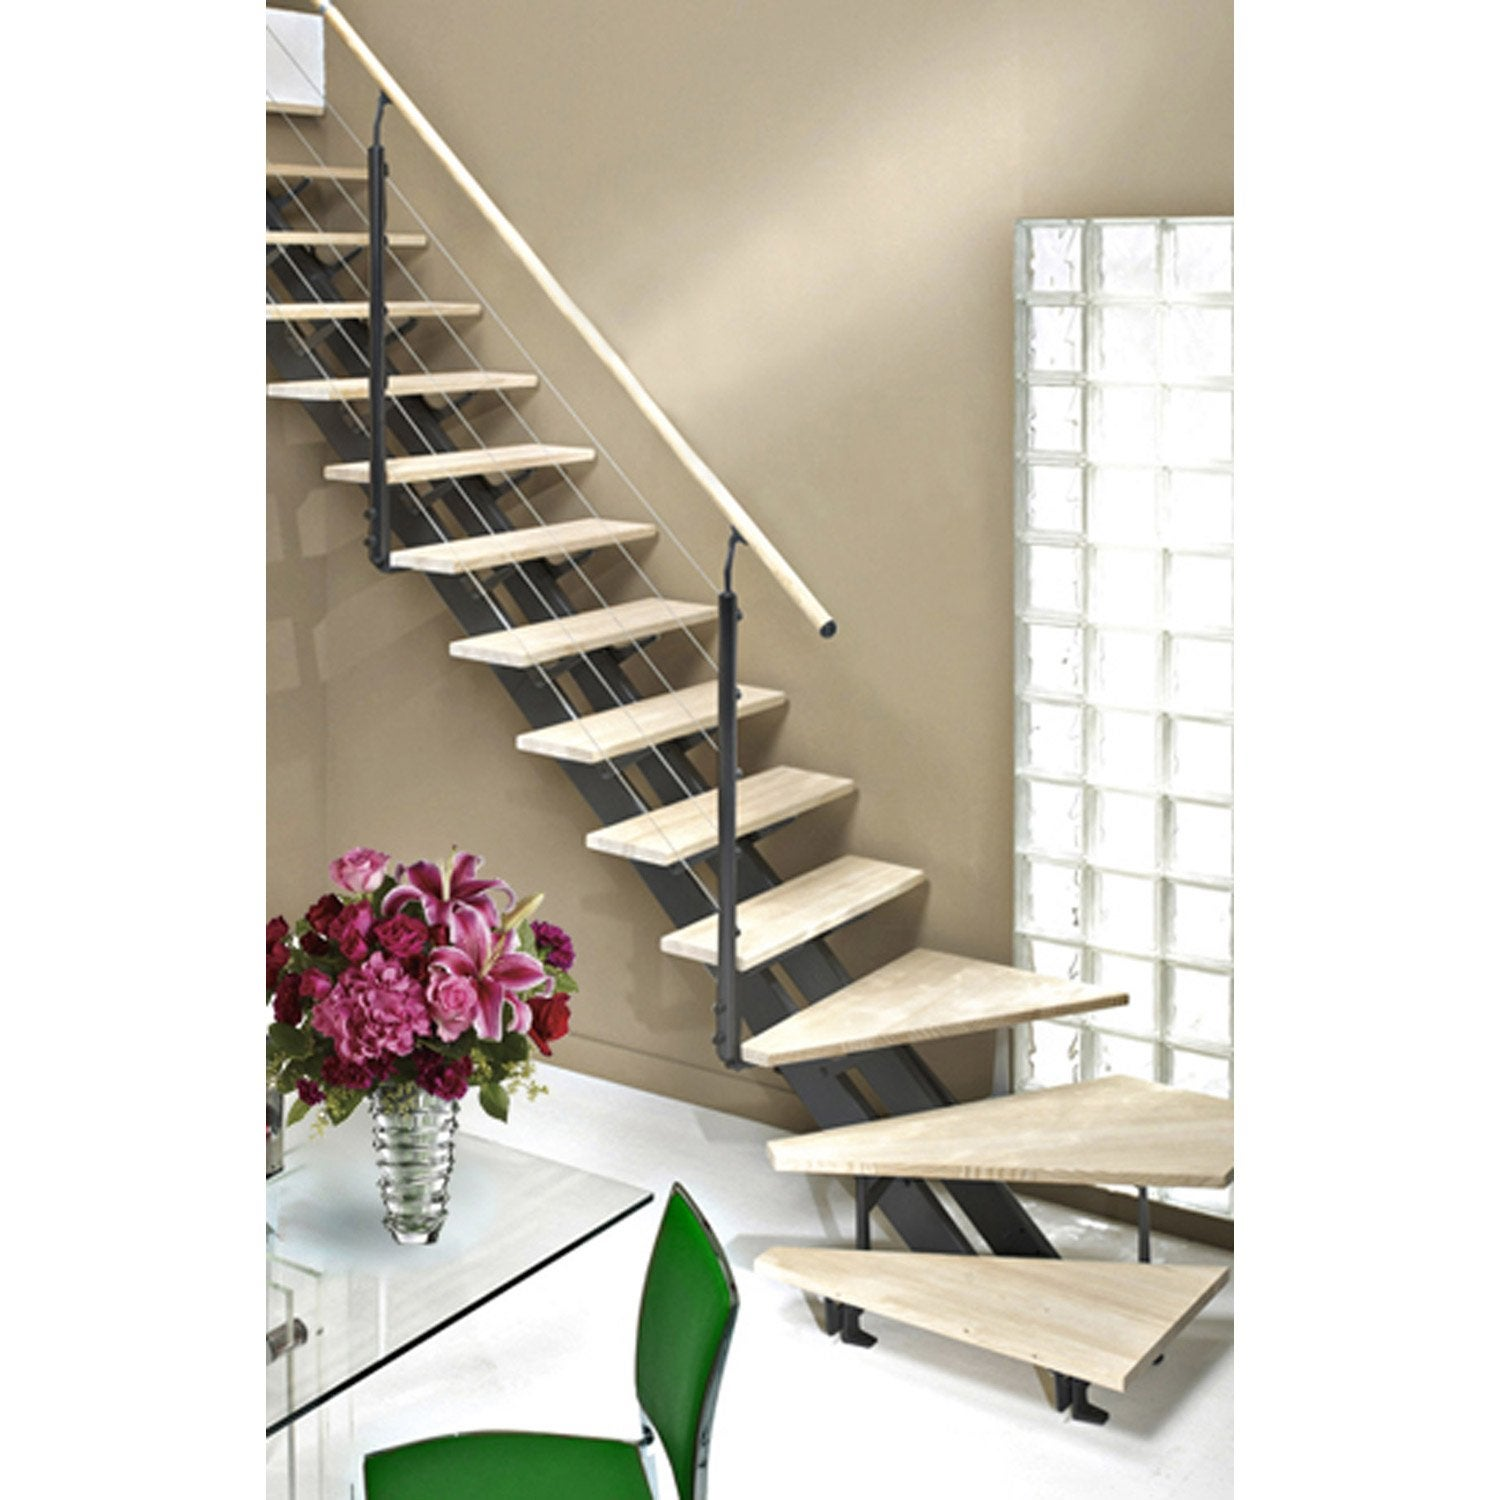 Escalier quart tournant escatwin structure aluminium for Escalier tournant